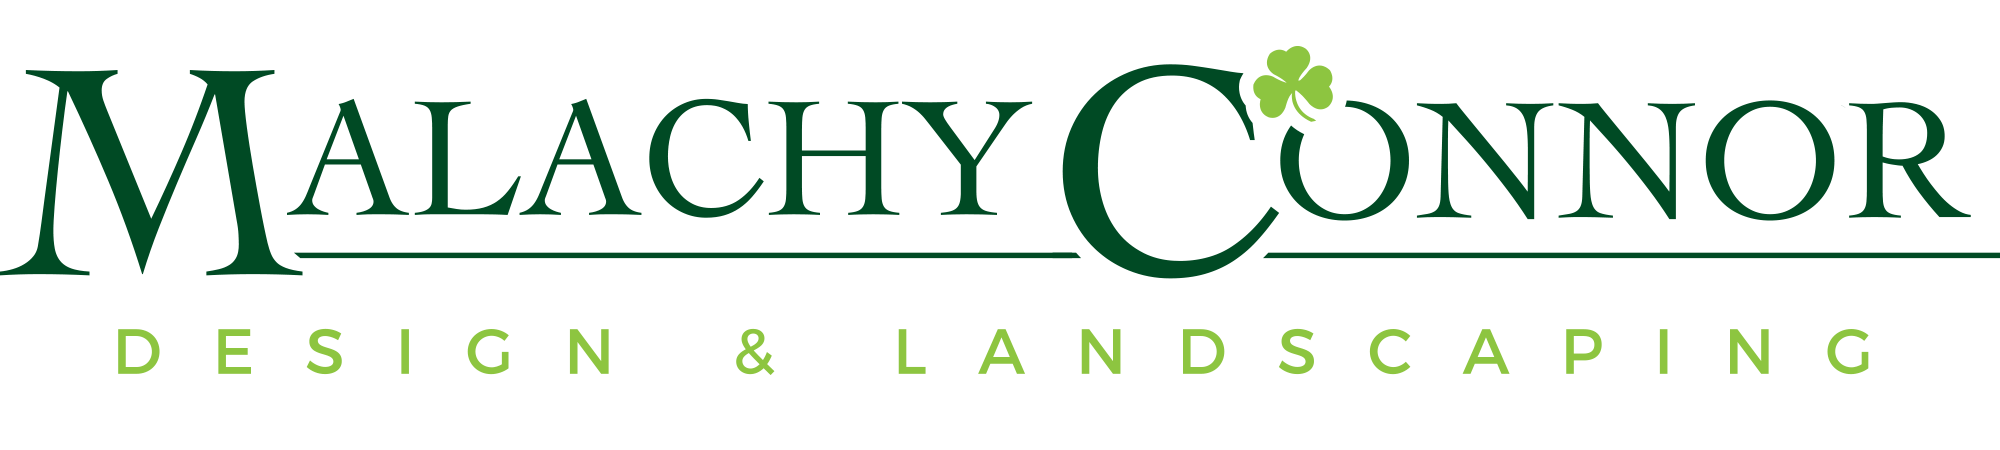 Malachy Connor Design & Landscaping Logo